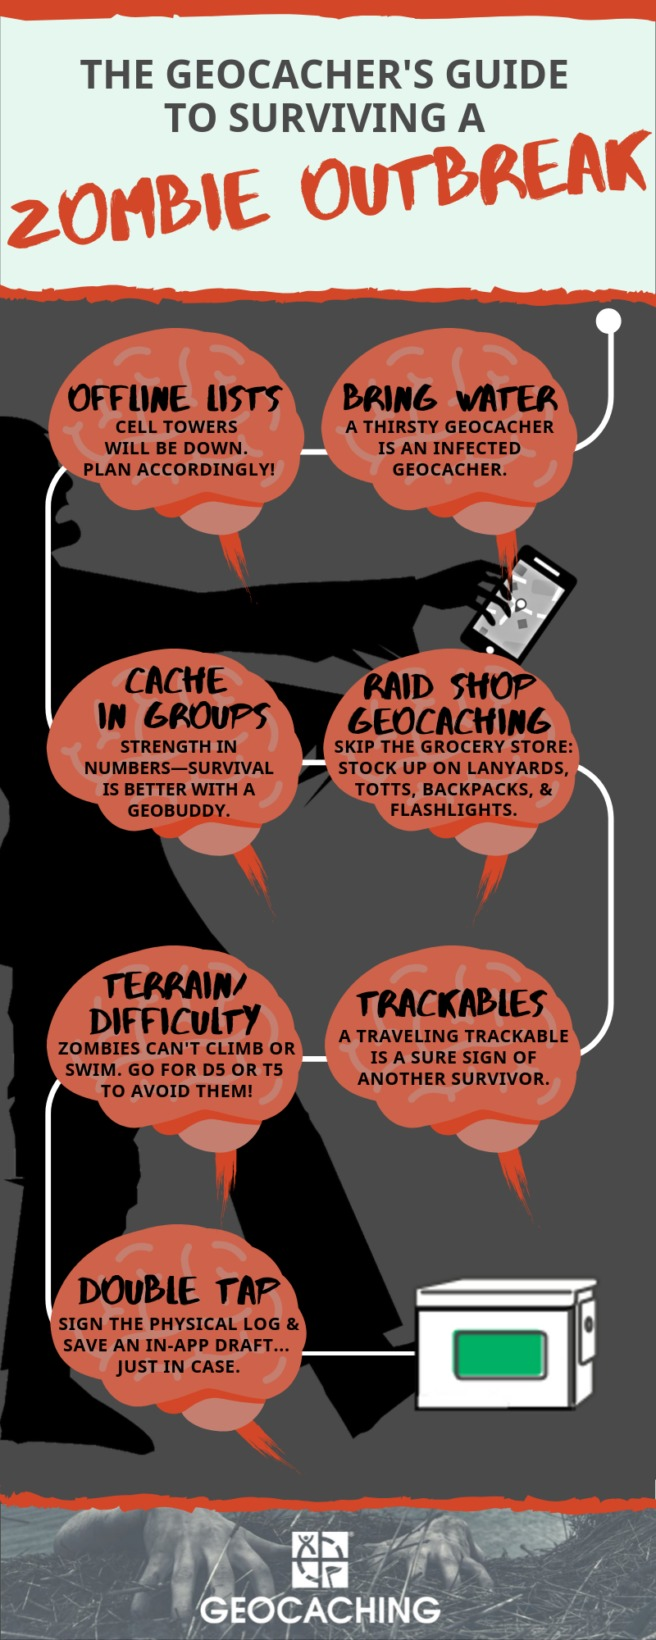 The Geocacher's Guide to Surviving a Zombie Outbreak